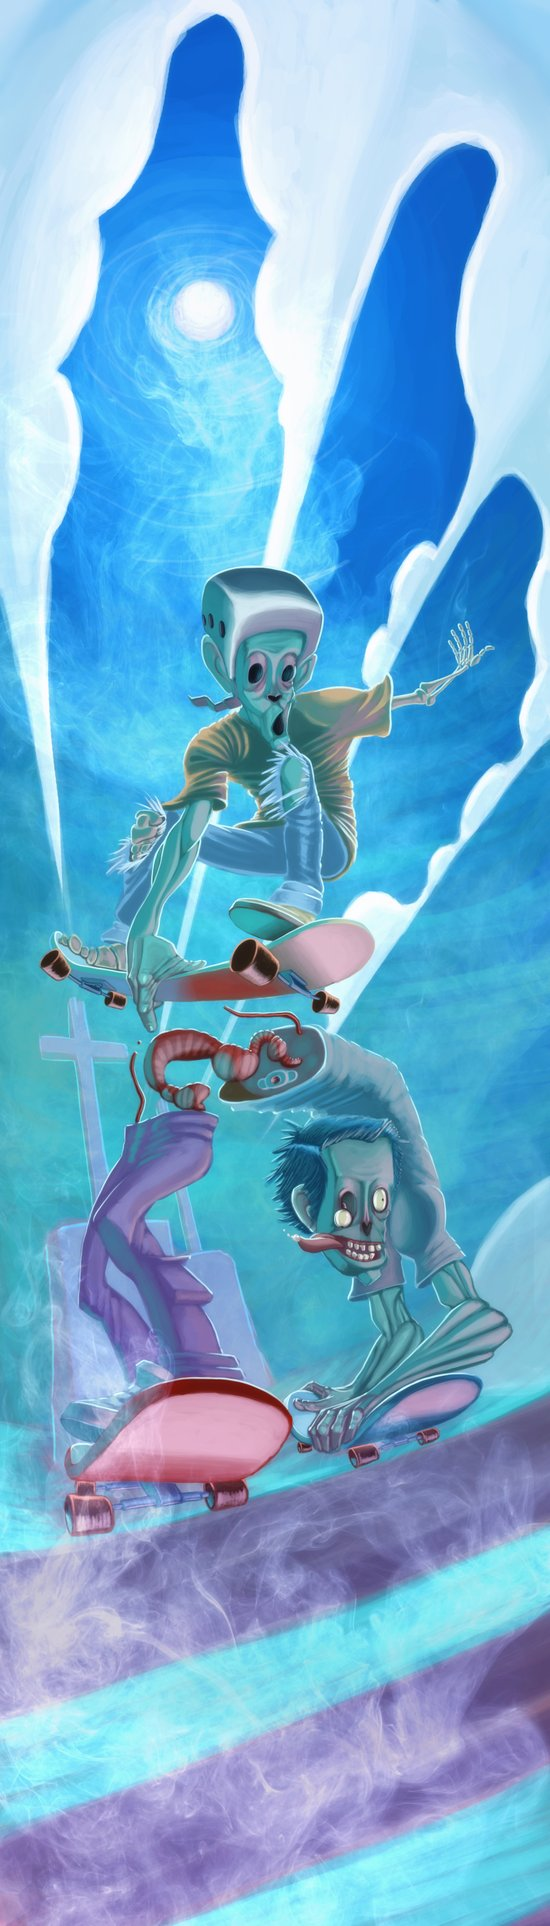 Zombies and Skateboards Art Print